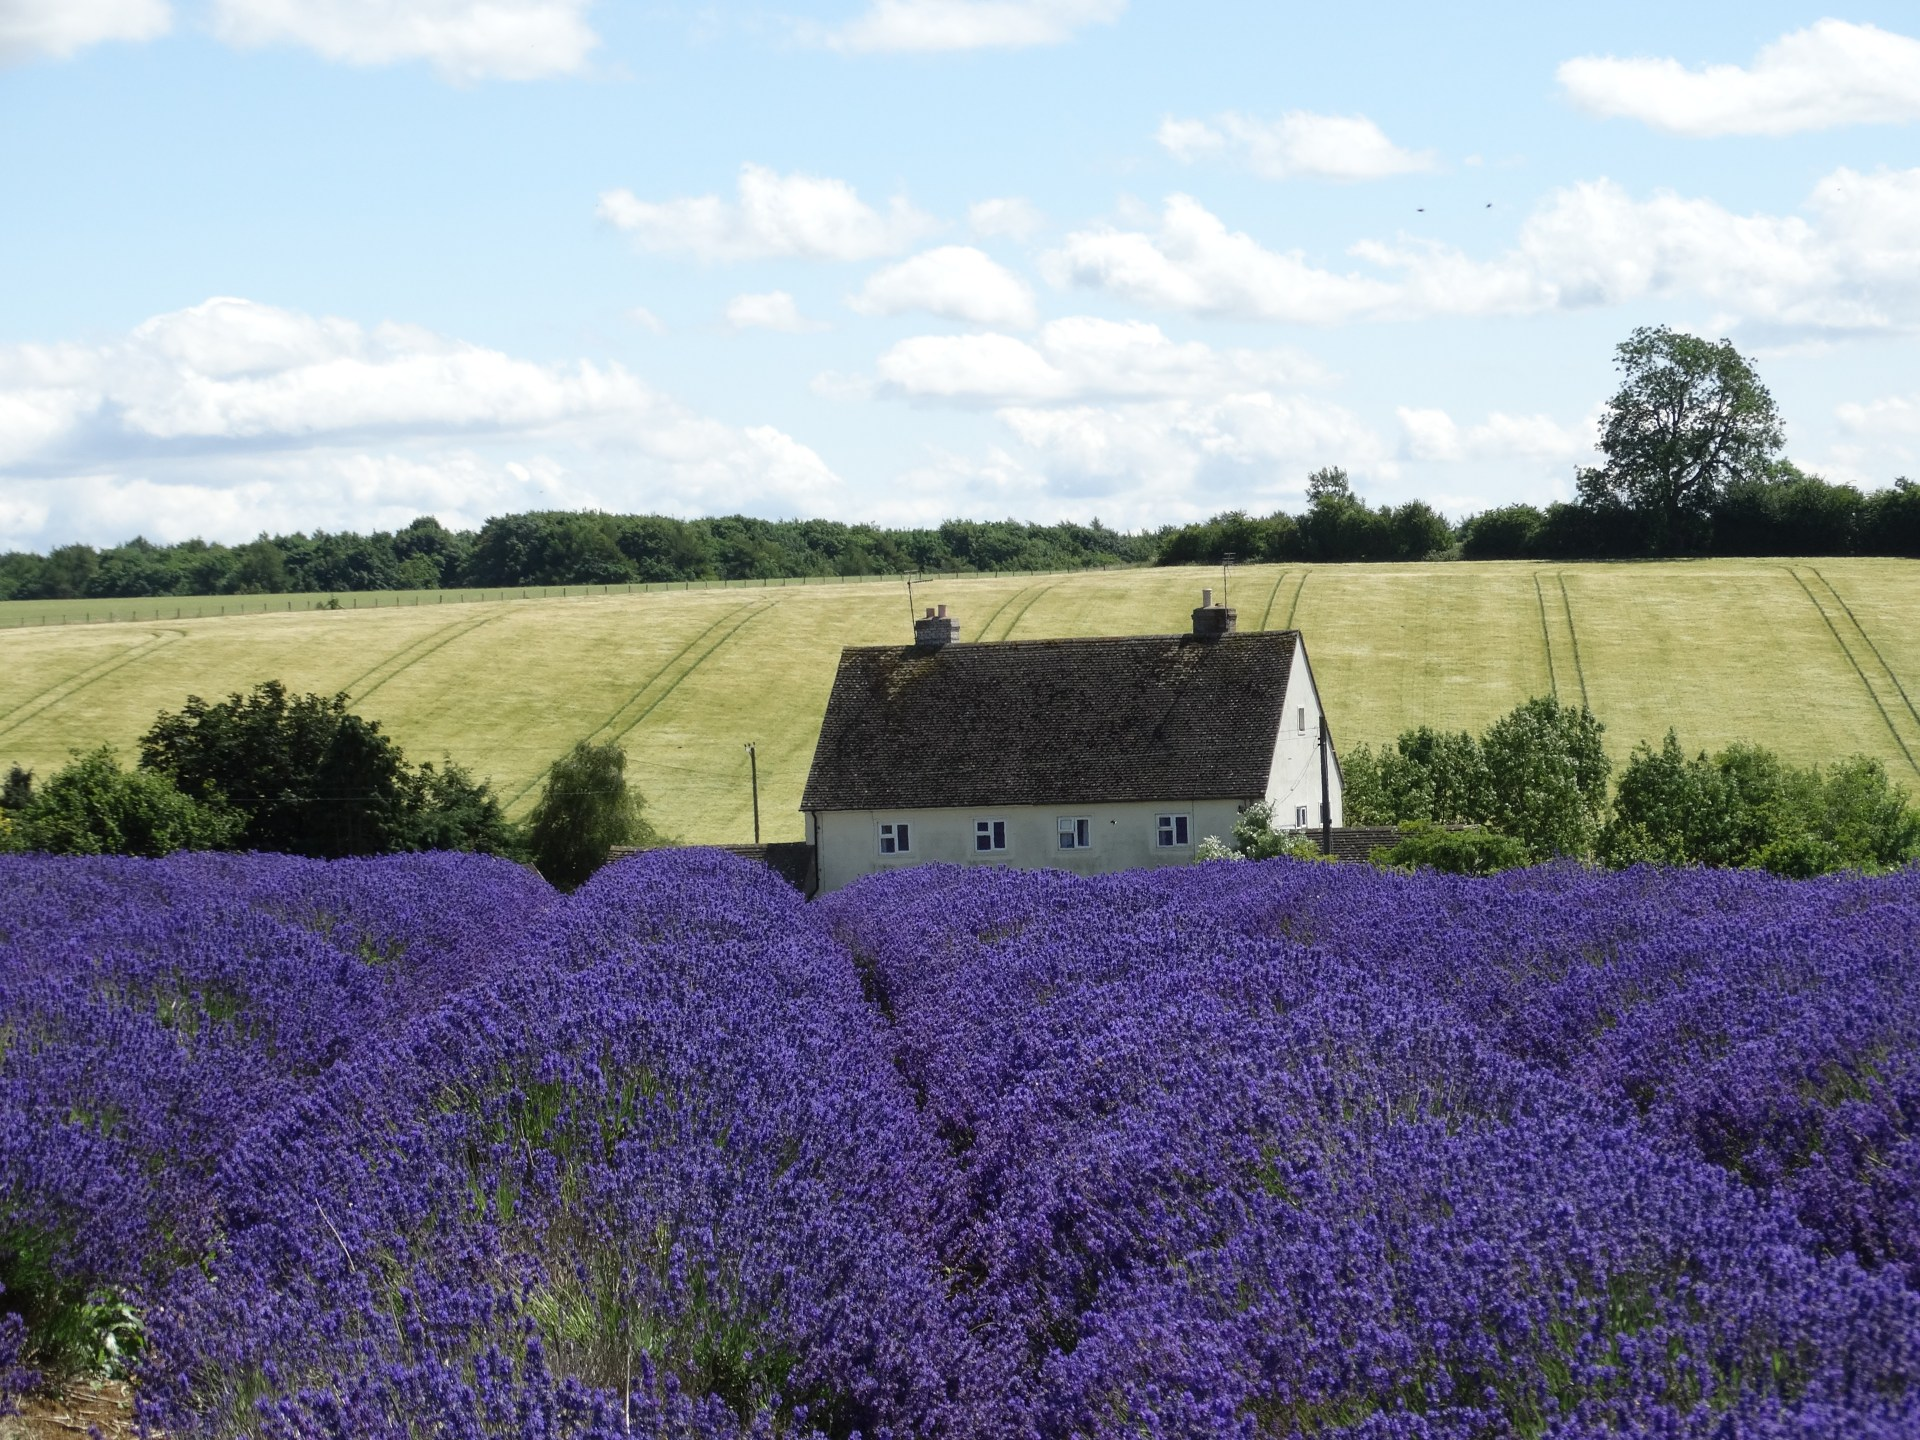 Visiting Snowhill Lavender Farm in Cotswolds